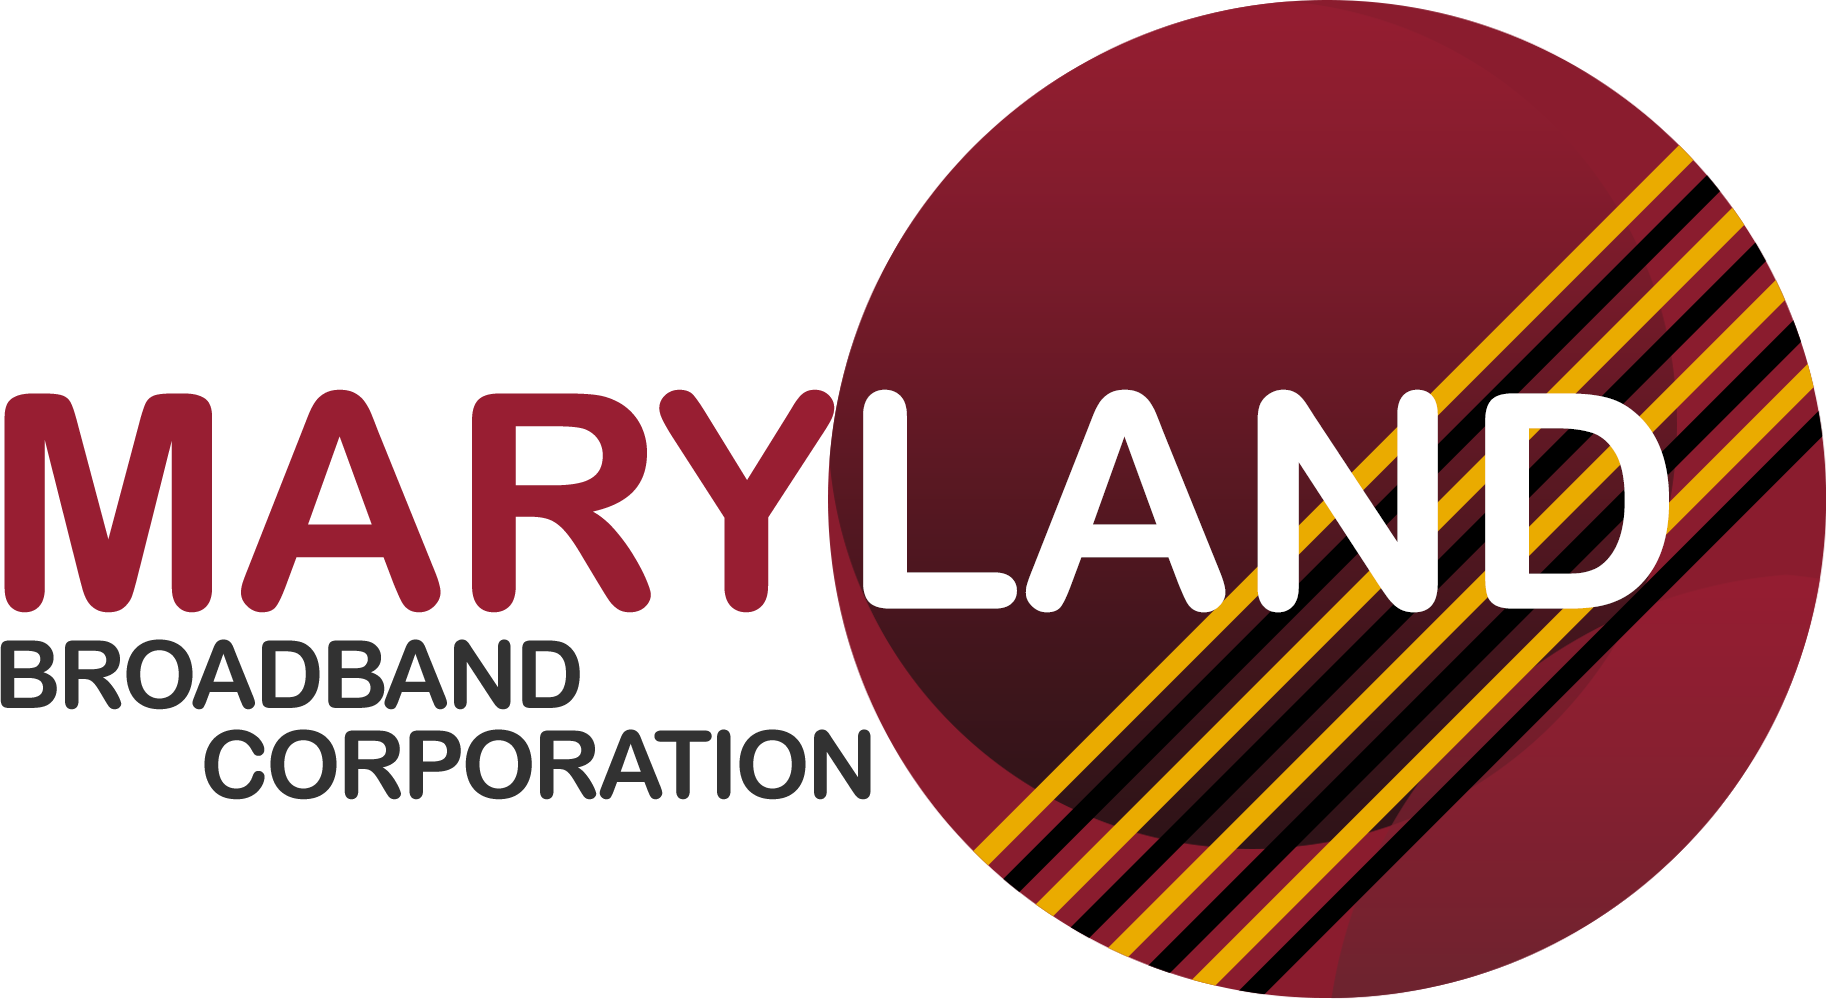 Maryland Broadband Corporation